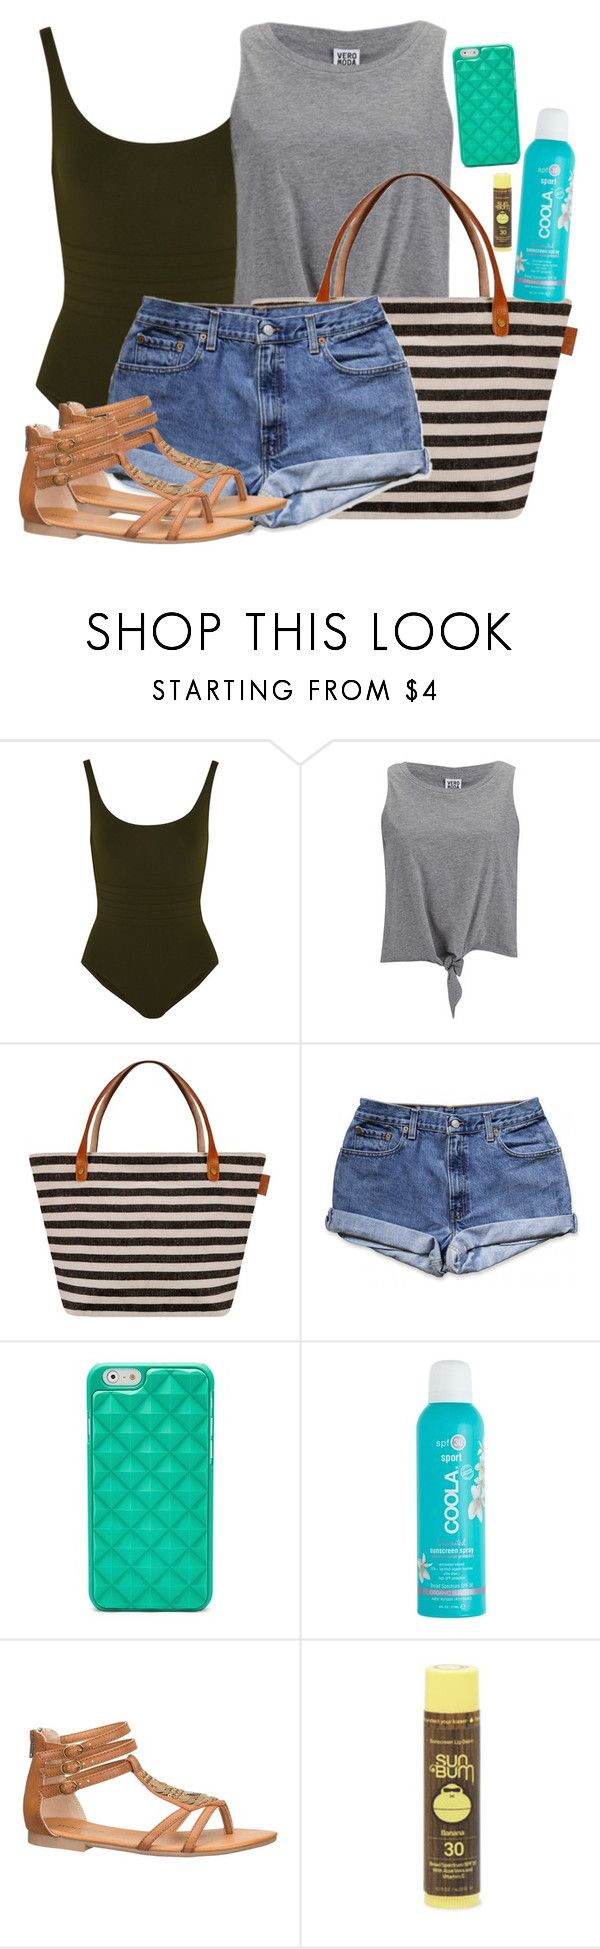 """Natasha Romanoff Inspired Pool Party Outfit"" by lauloxx ❤ liked on Polyvore featuring Eres, Vero Moda, FOSSIL, J.Crew, maurices, Summer, casual, NatashaRomanoff and poolparty"